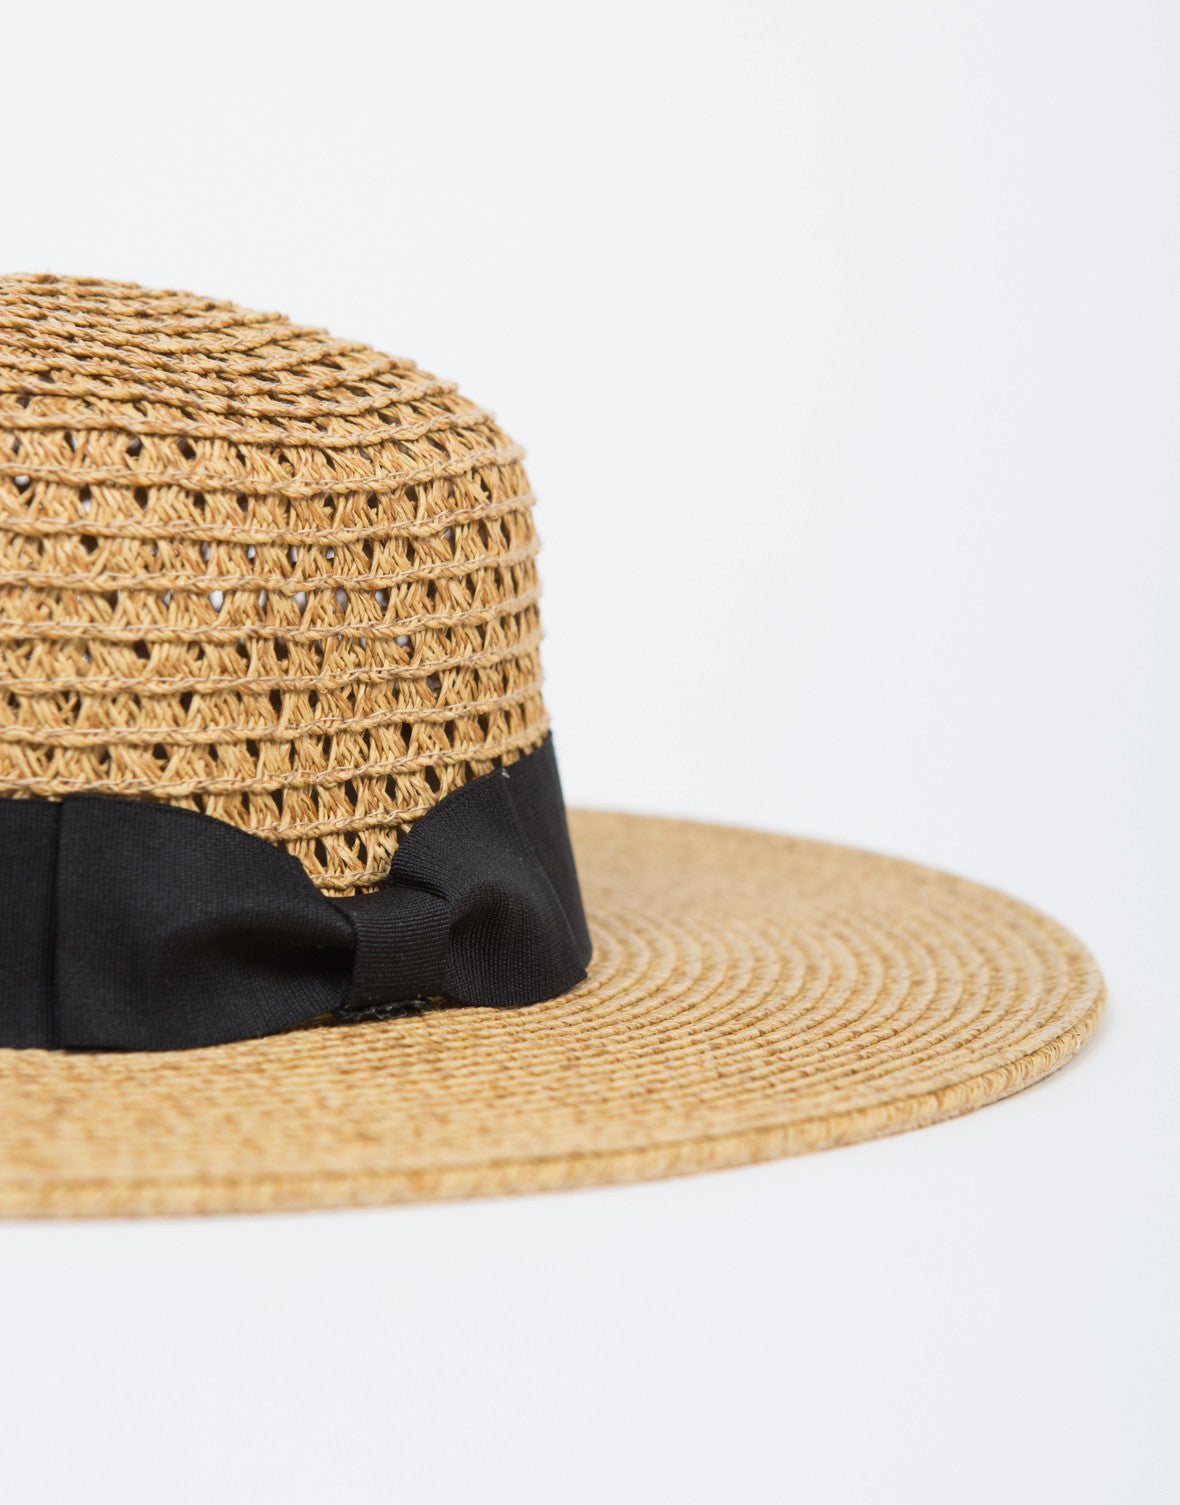 Round and Round Straw Hat